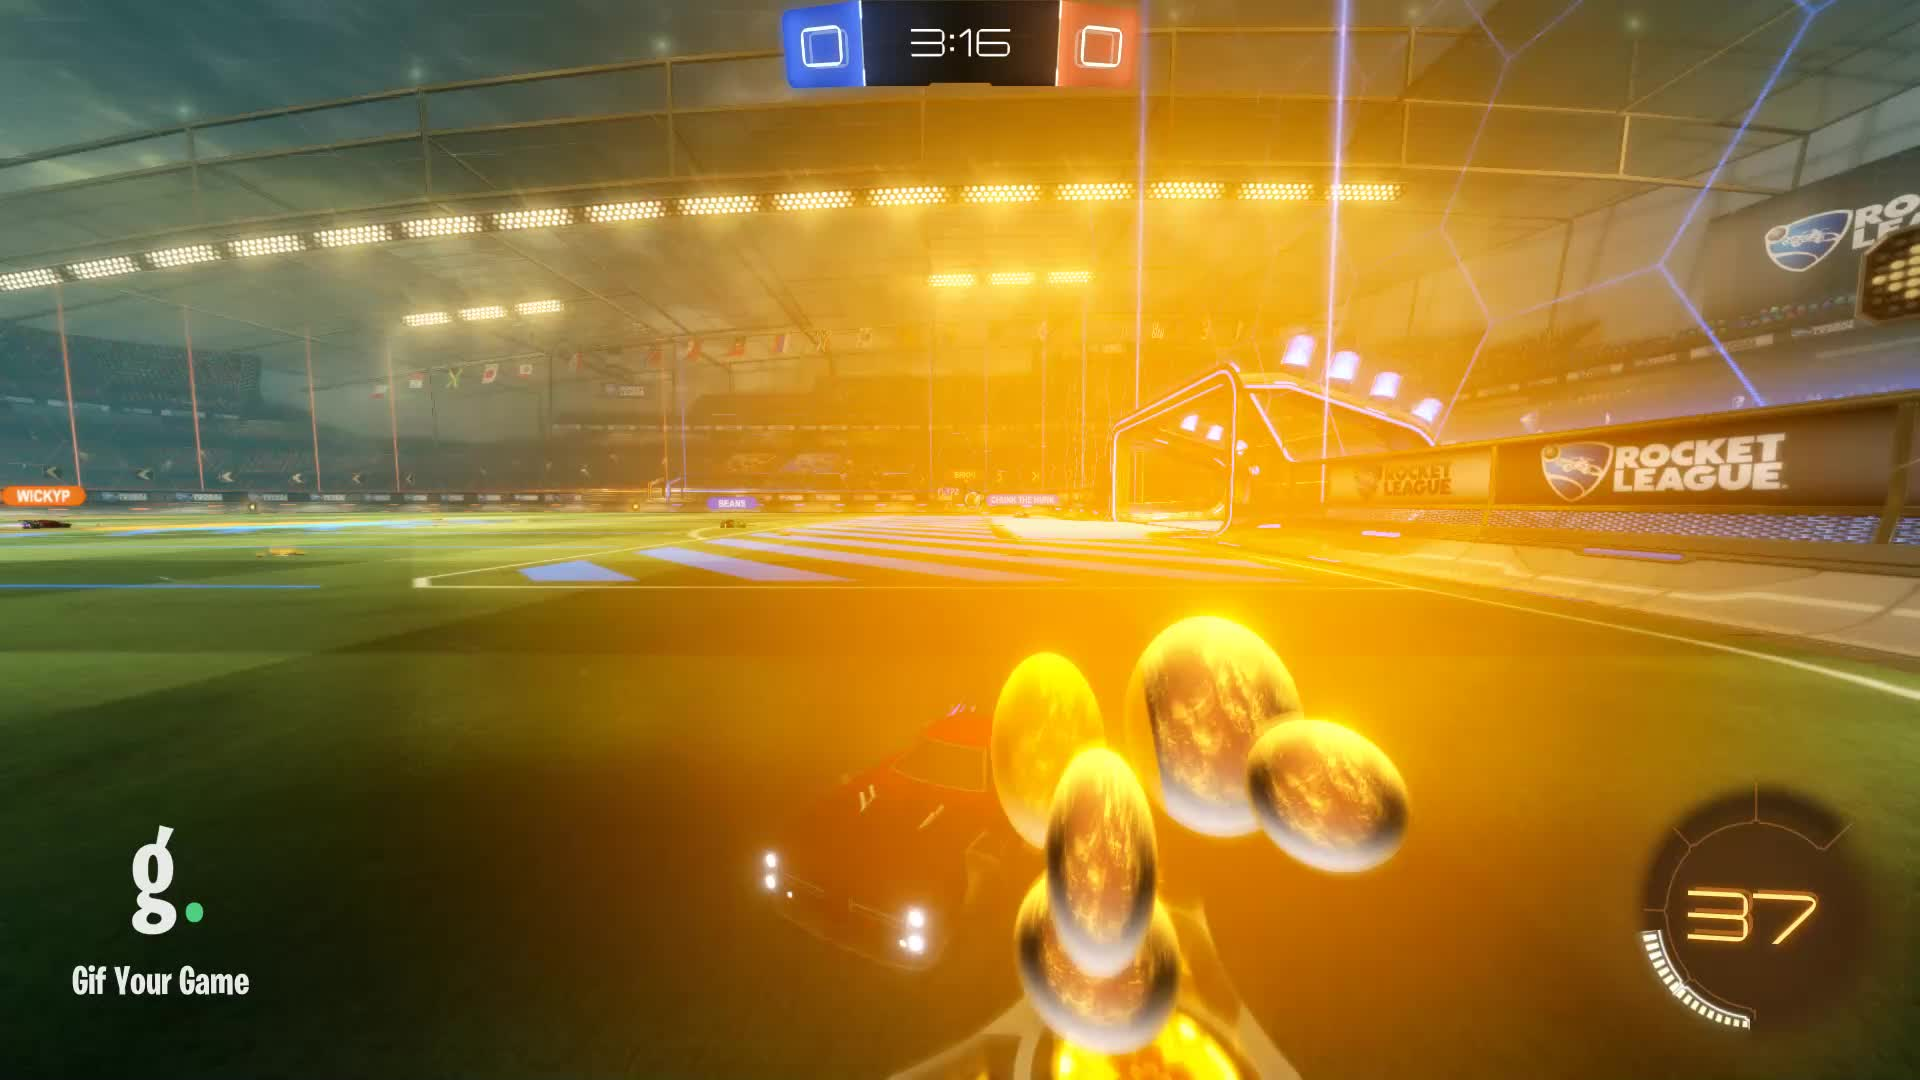 FireFox, Gif Your Game, GifYourGame, Goal, Rocket League, RocketLeague, Goal 1: FireFox GIFs